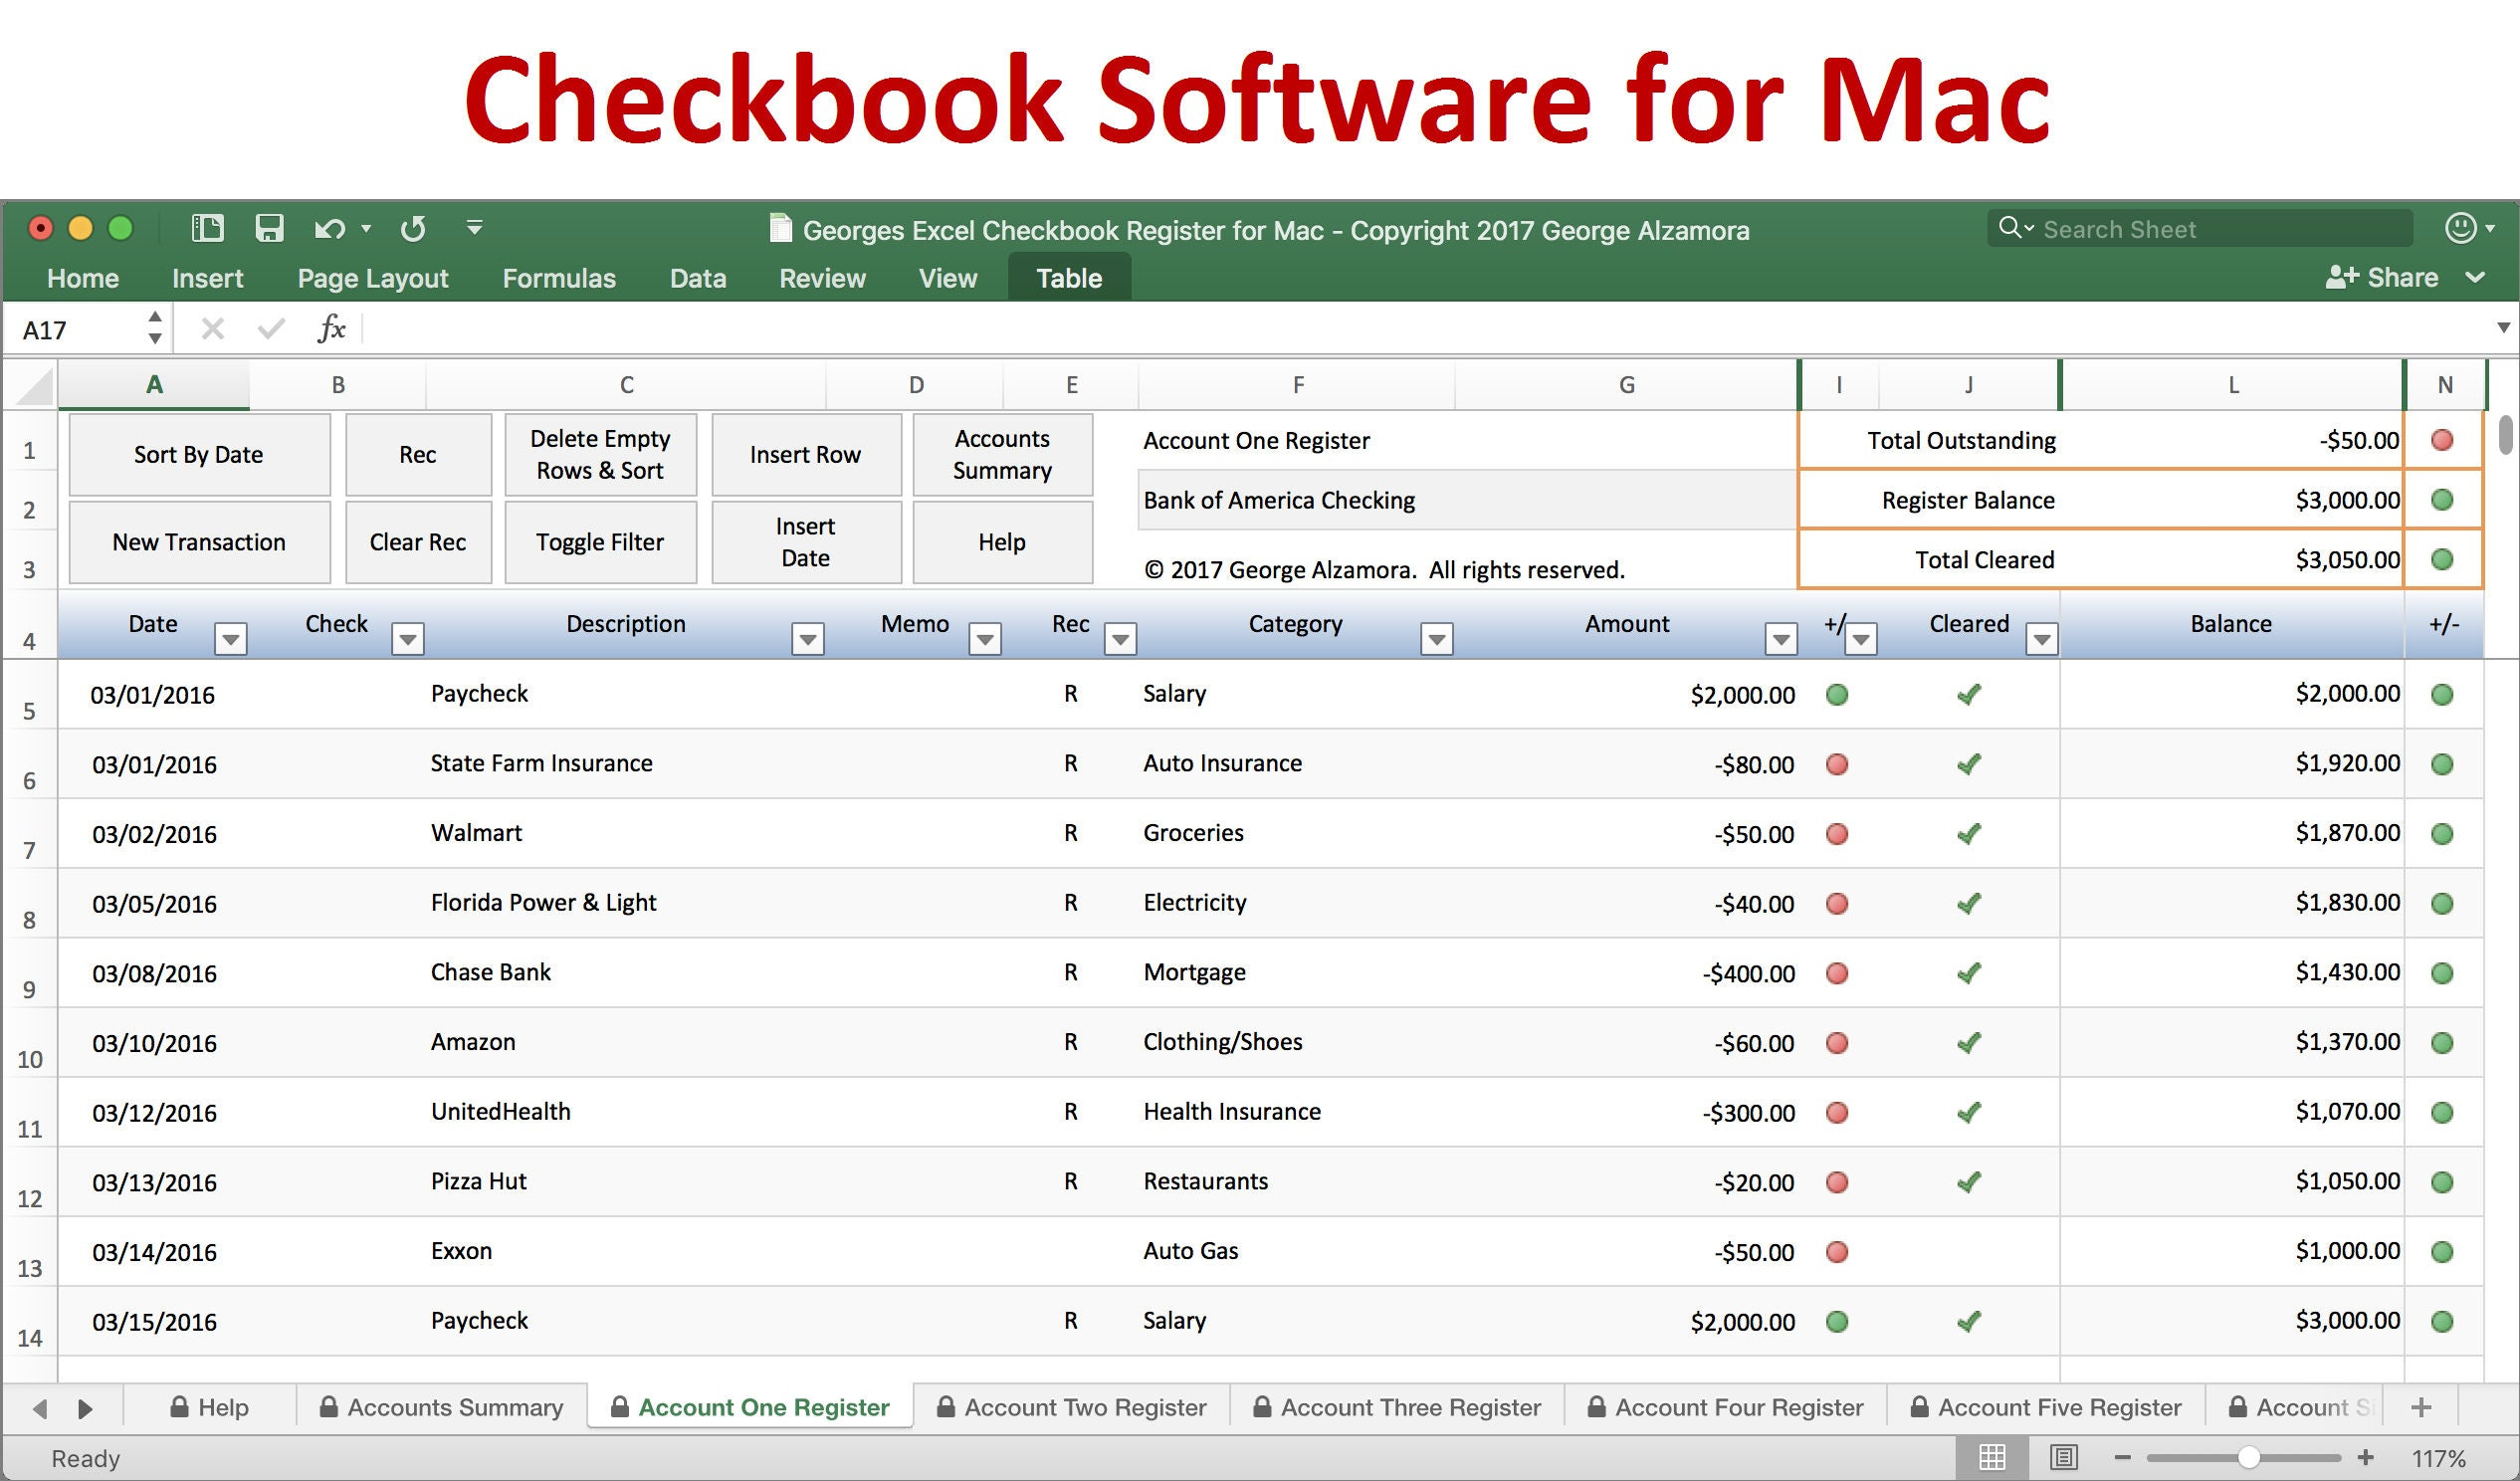 Excel budget spreadsheet template and checkbook register checkbook register for mac excel checkbook spreadsheet software for mac computers mac checkbook register alramifo Images